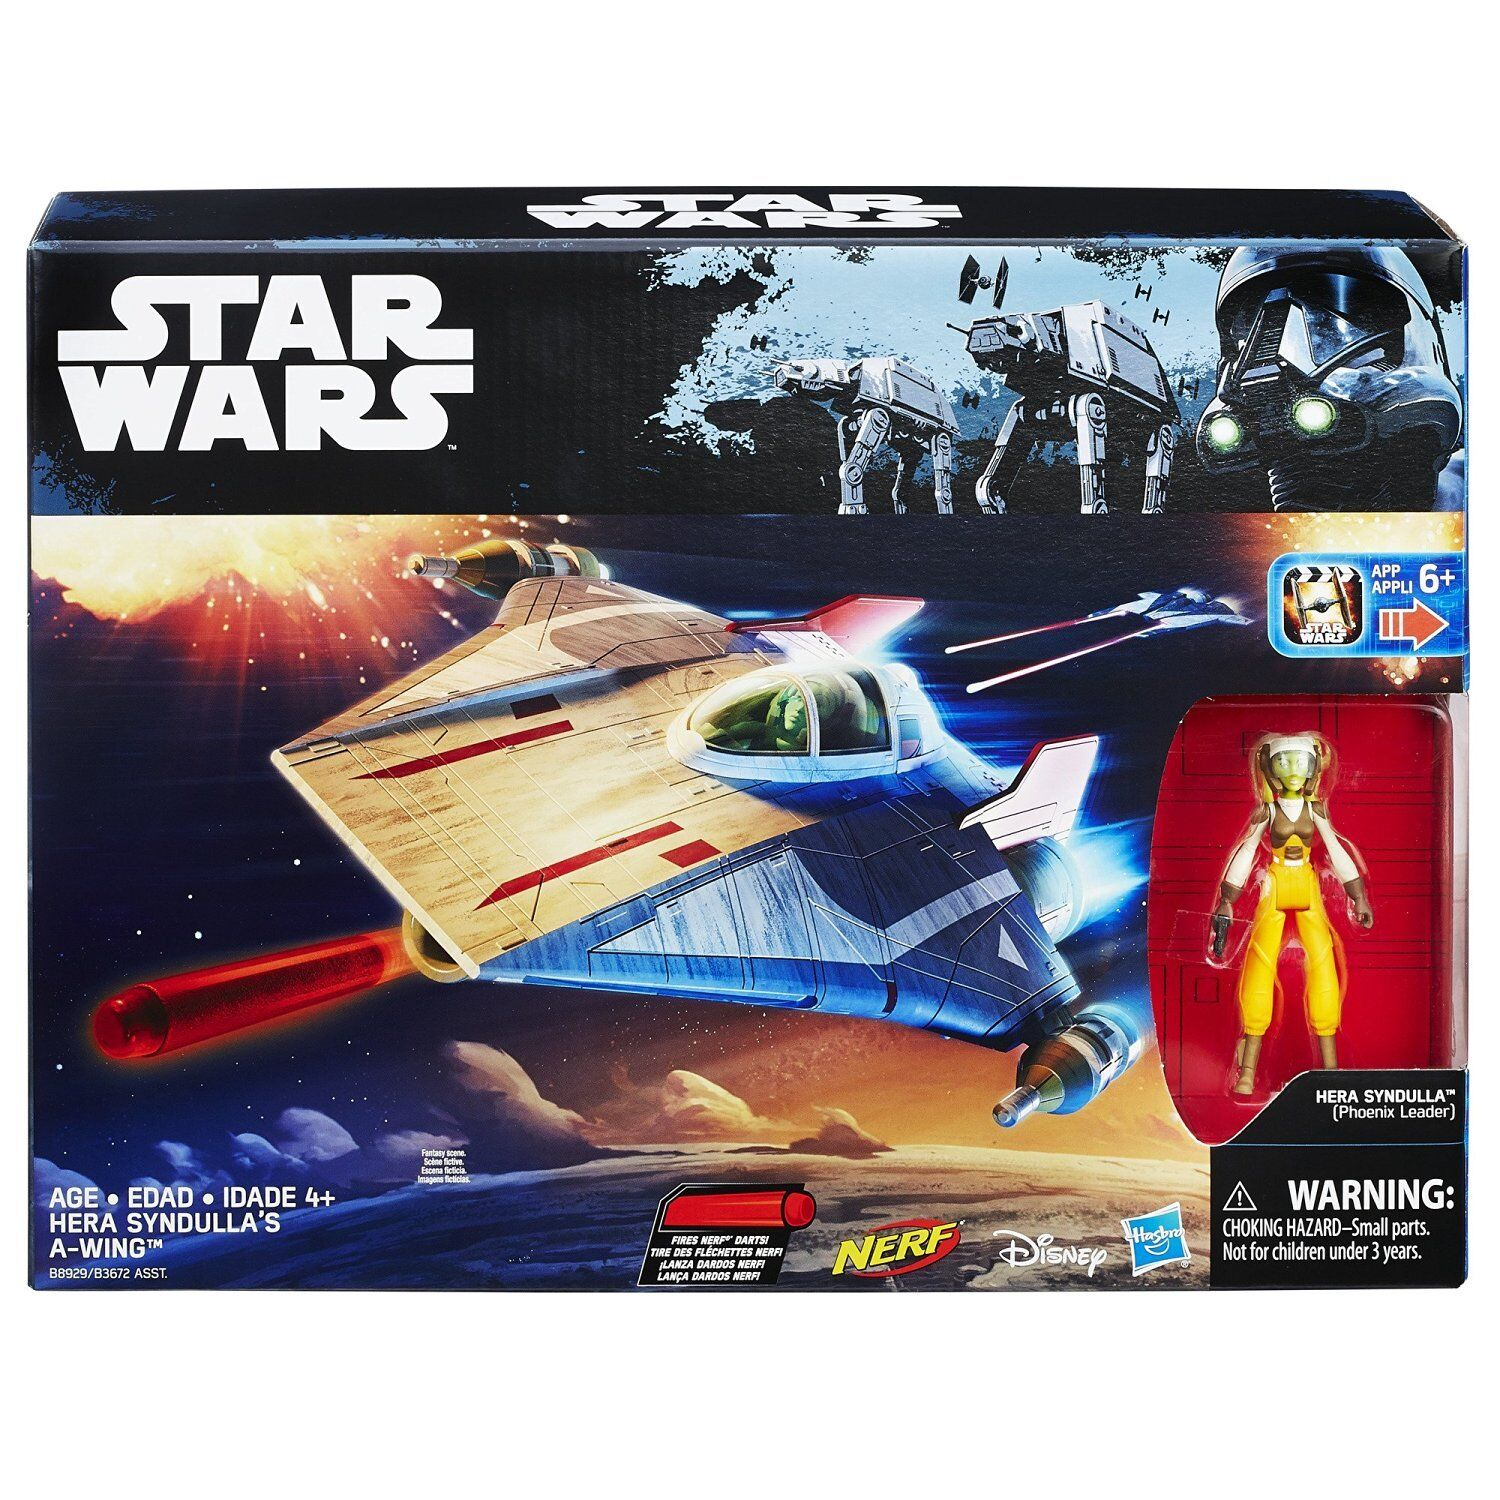 Star - wars - die rebellen hera syndulla & flügel star fighter action - figur